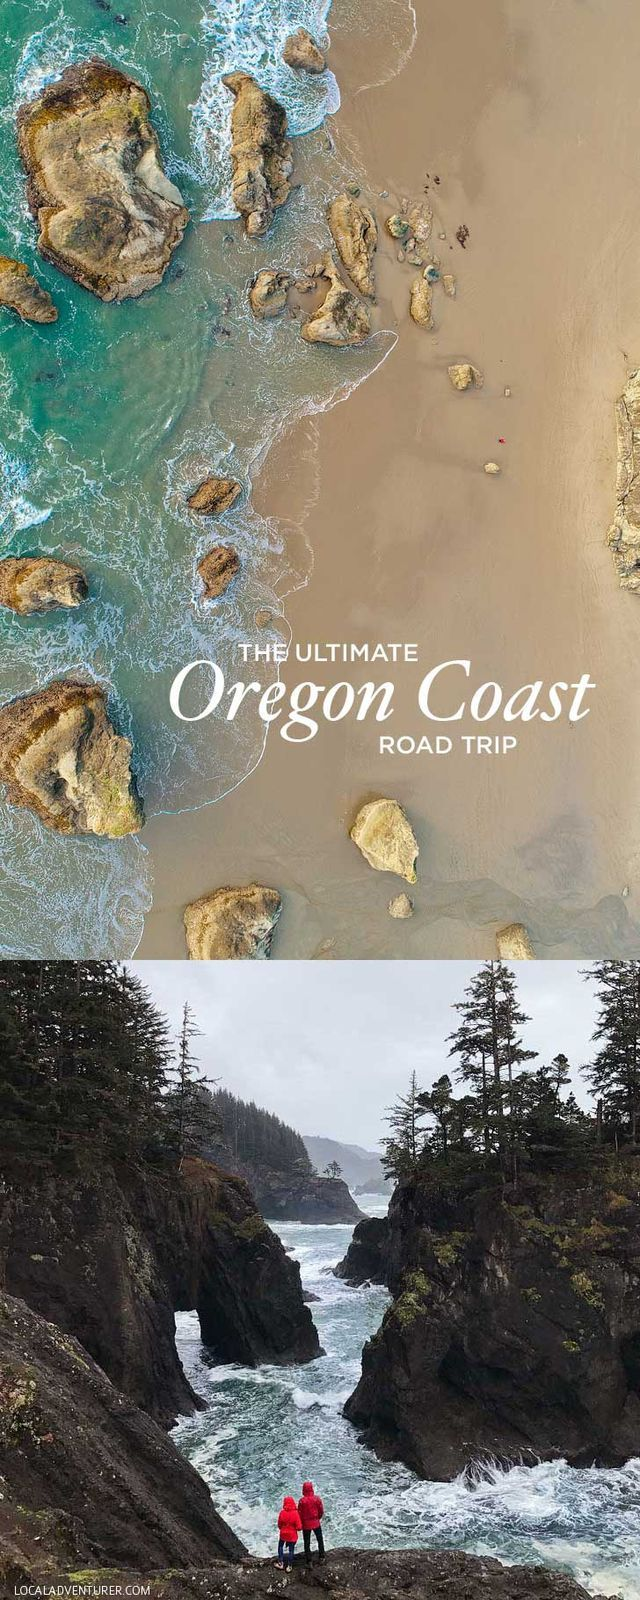 Last week, we did the ultimate road trip down the Oregon Coast with Travel Oregon – all 363 miles of it. It was epic! This year, the People's Coast is celebrating the 50th anniversary of the Oregon be